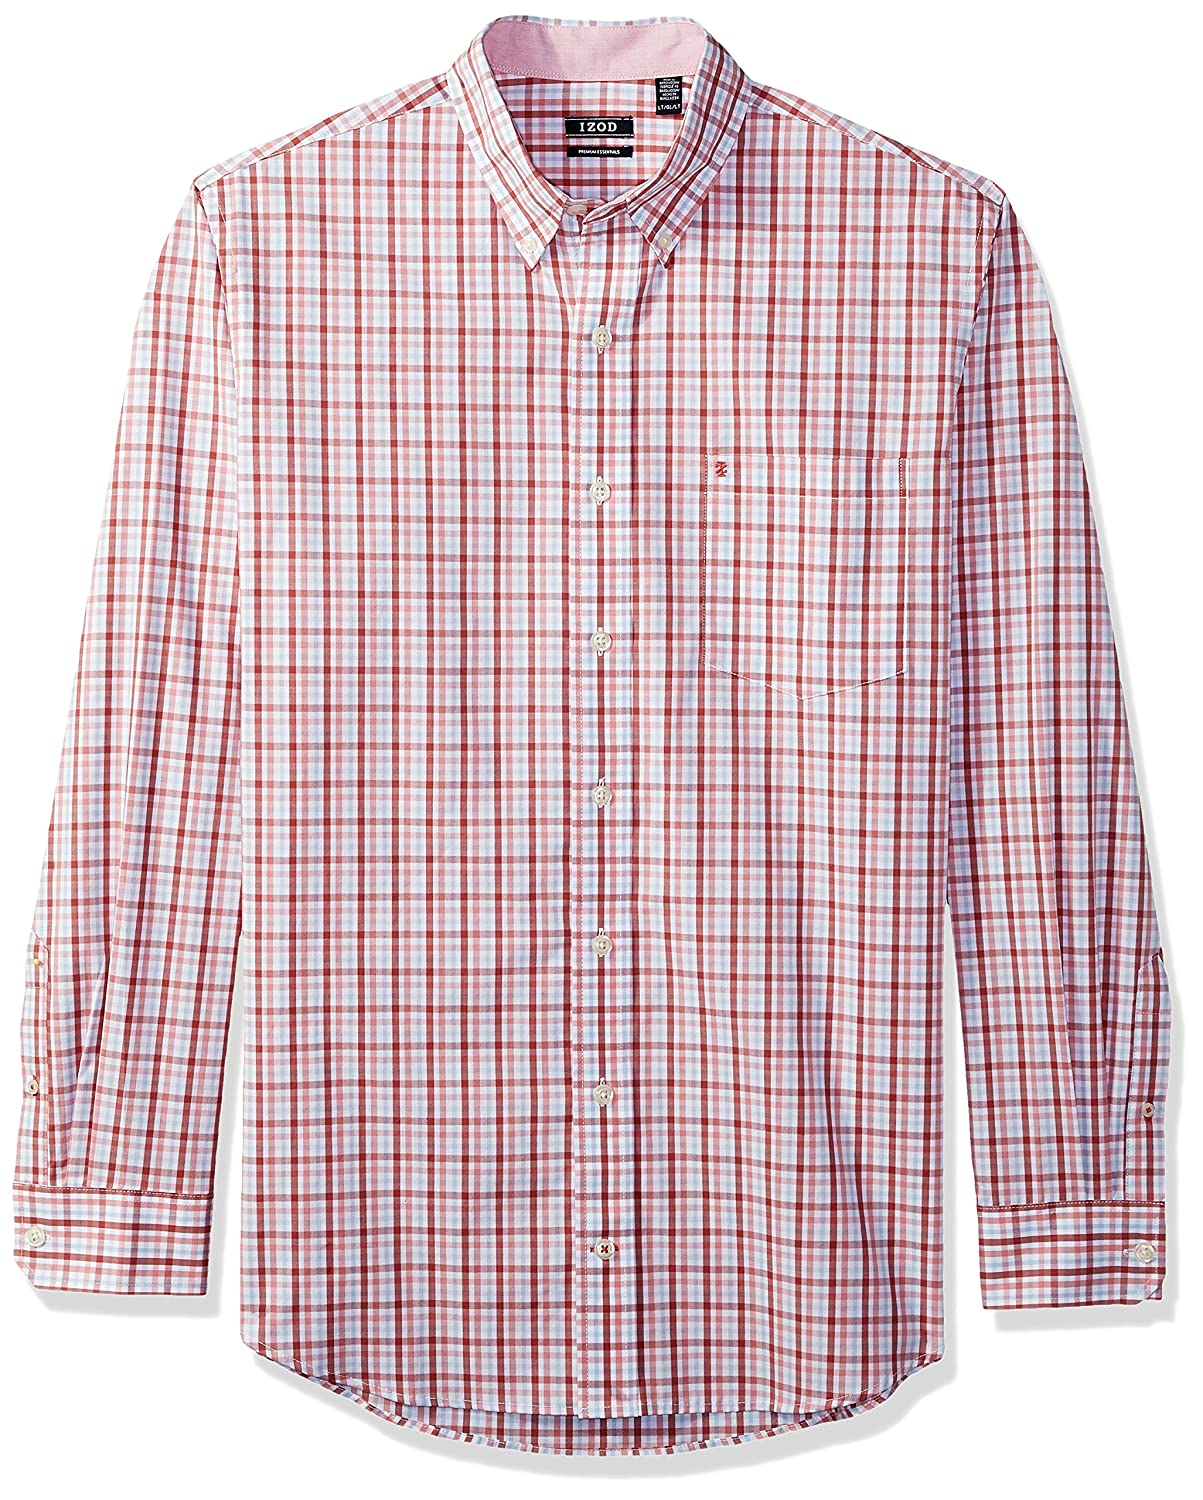 IZOD SHIRT メンズ B071YZJP37 3X Tall|Saltwater Red Saltwater Red 3X Tall